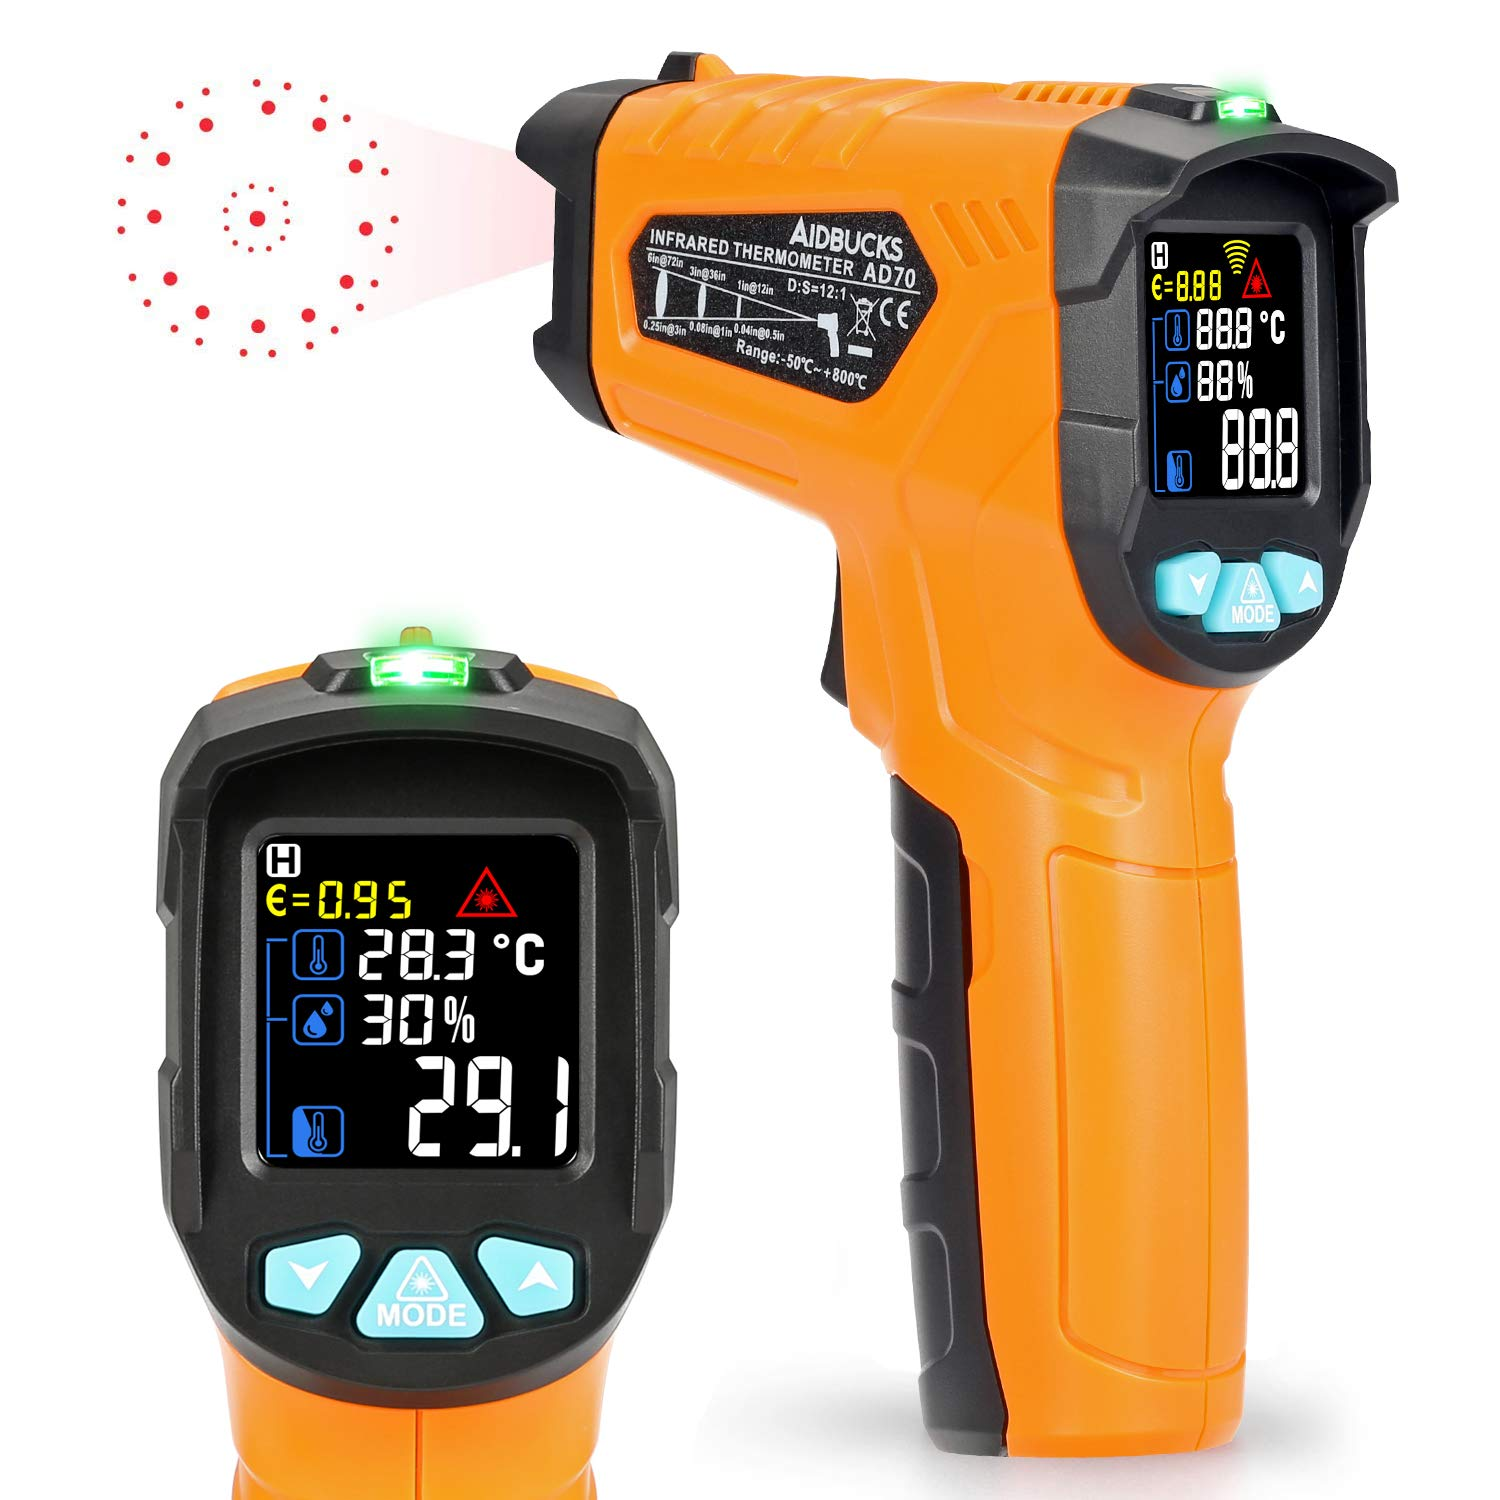 Infrared Thermometer -58°F to 1472°F Kasimir AD70 Digital Laser Non Contact Cooking IR Temperature Gun with Color Display for Kitchen Food Meat BBQ Automotive and Industrial by Kasimir